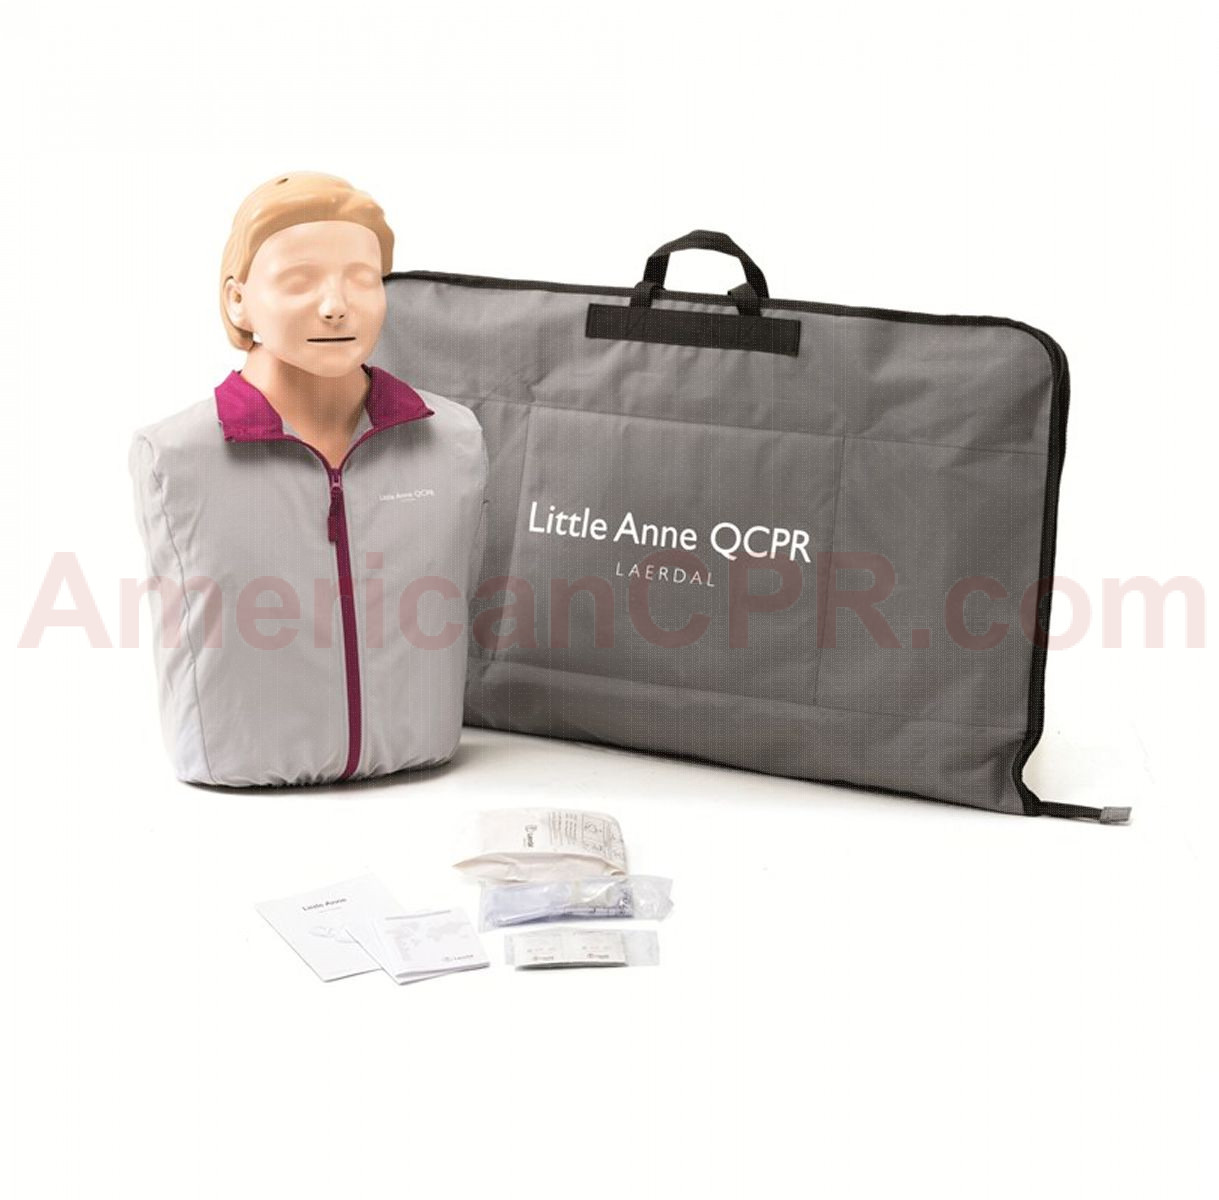 Little Anne QCPR - Adult CPR Manikin - Laerdal